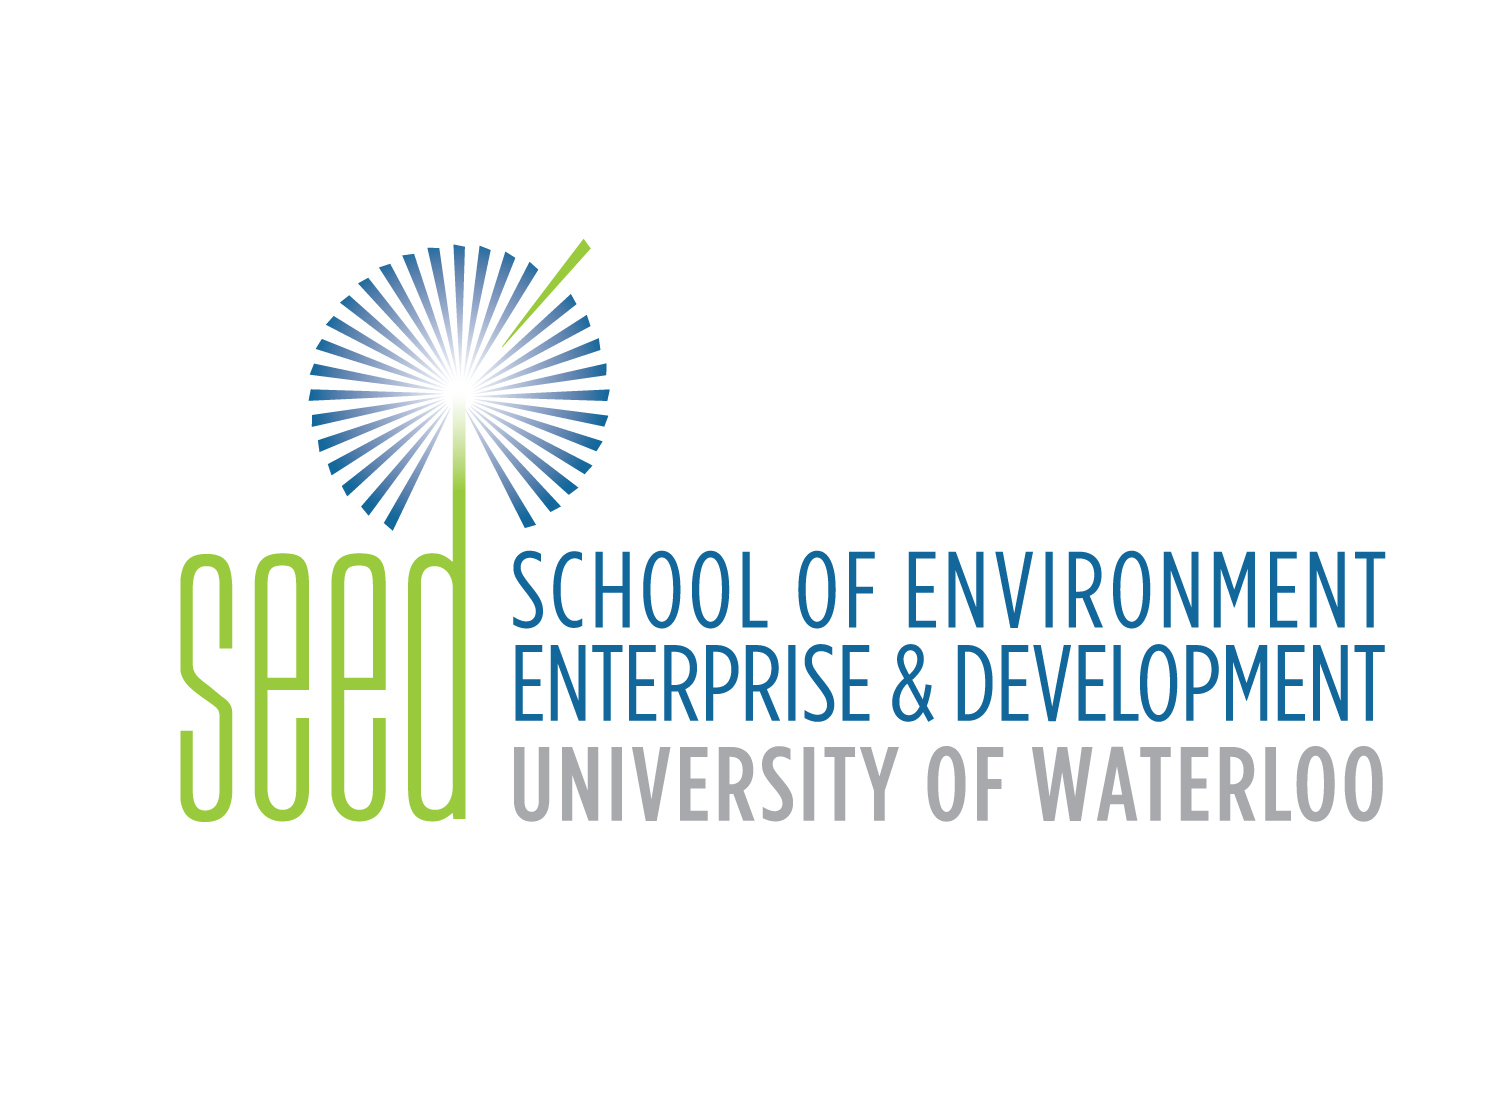 SEED logo: School of Environment, Enterprise and Development